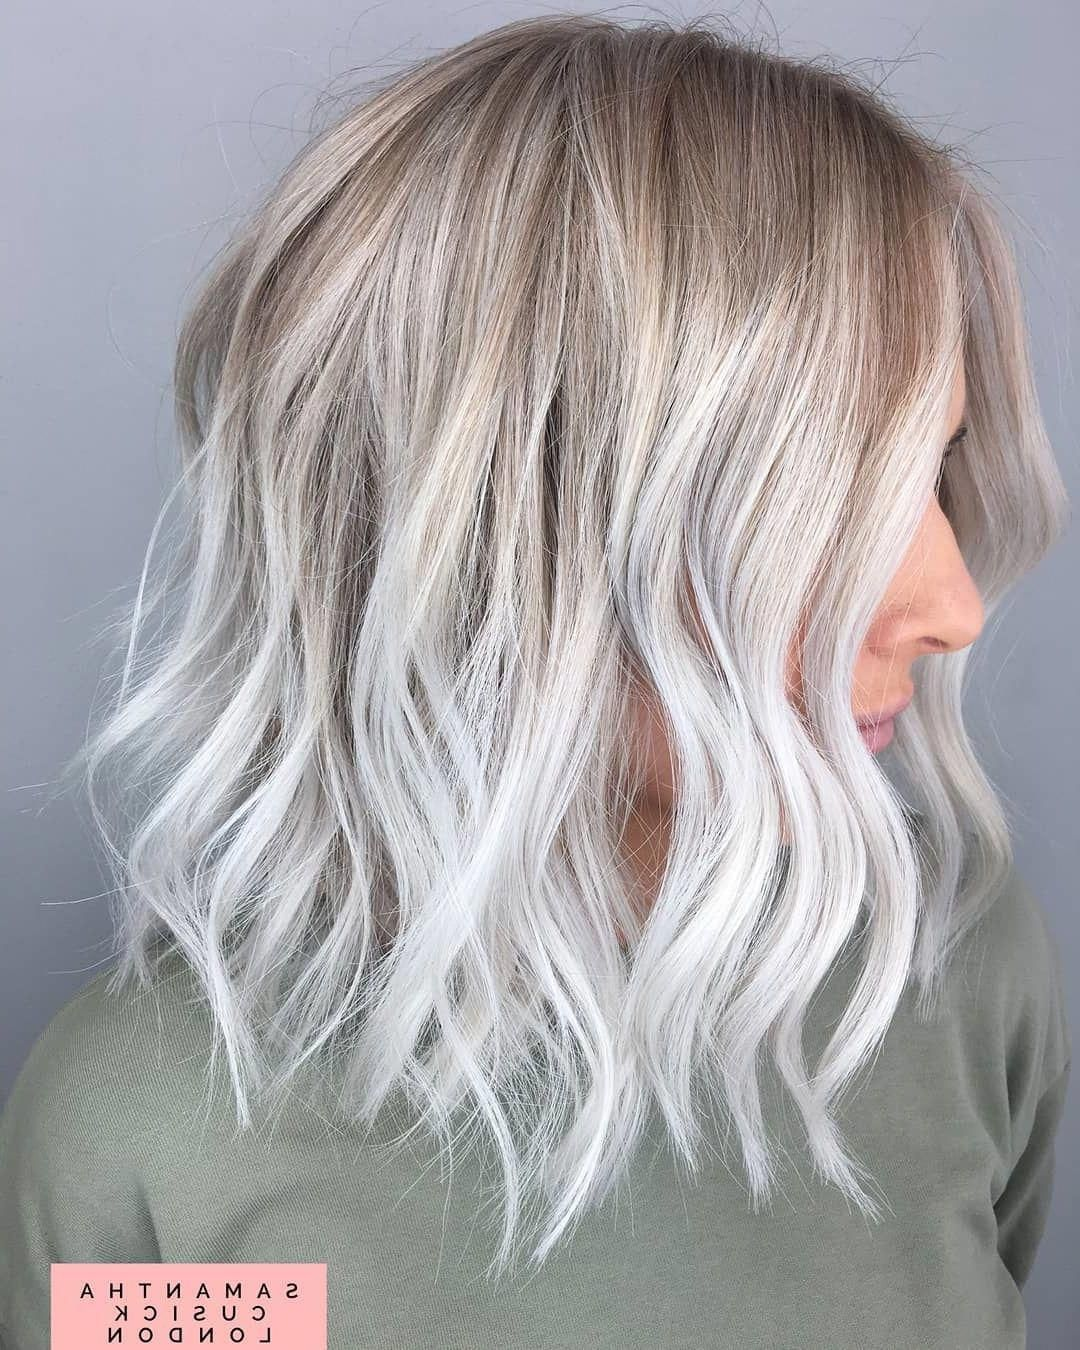 25 Ash Blonde Balayage Hair Color Ideas, Looking for ash blonde balayage hair color ideas? Then, hair color of your own should be darker than typical blonde. Light ash blonde balayage may tru..., Balayage #haircolorbalayage #naturalashblonde